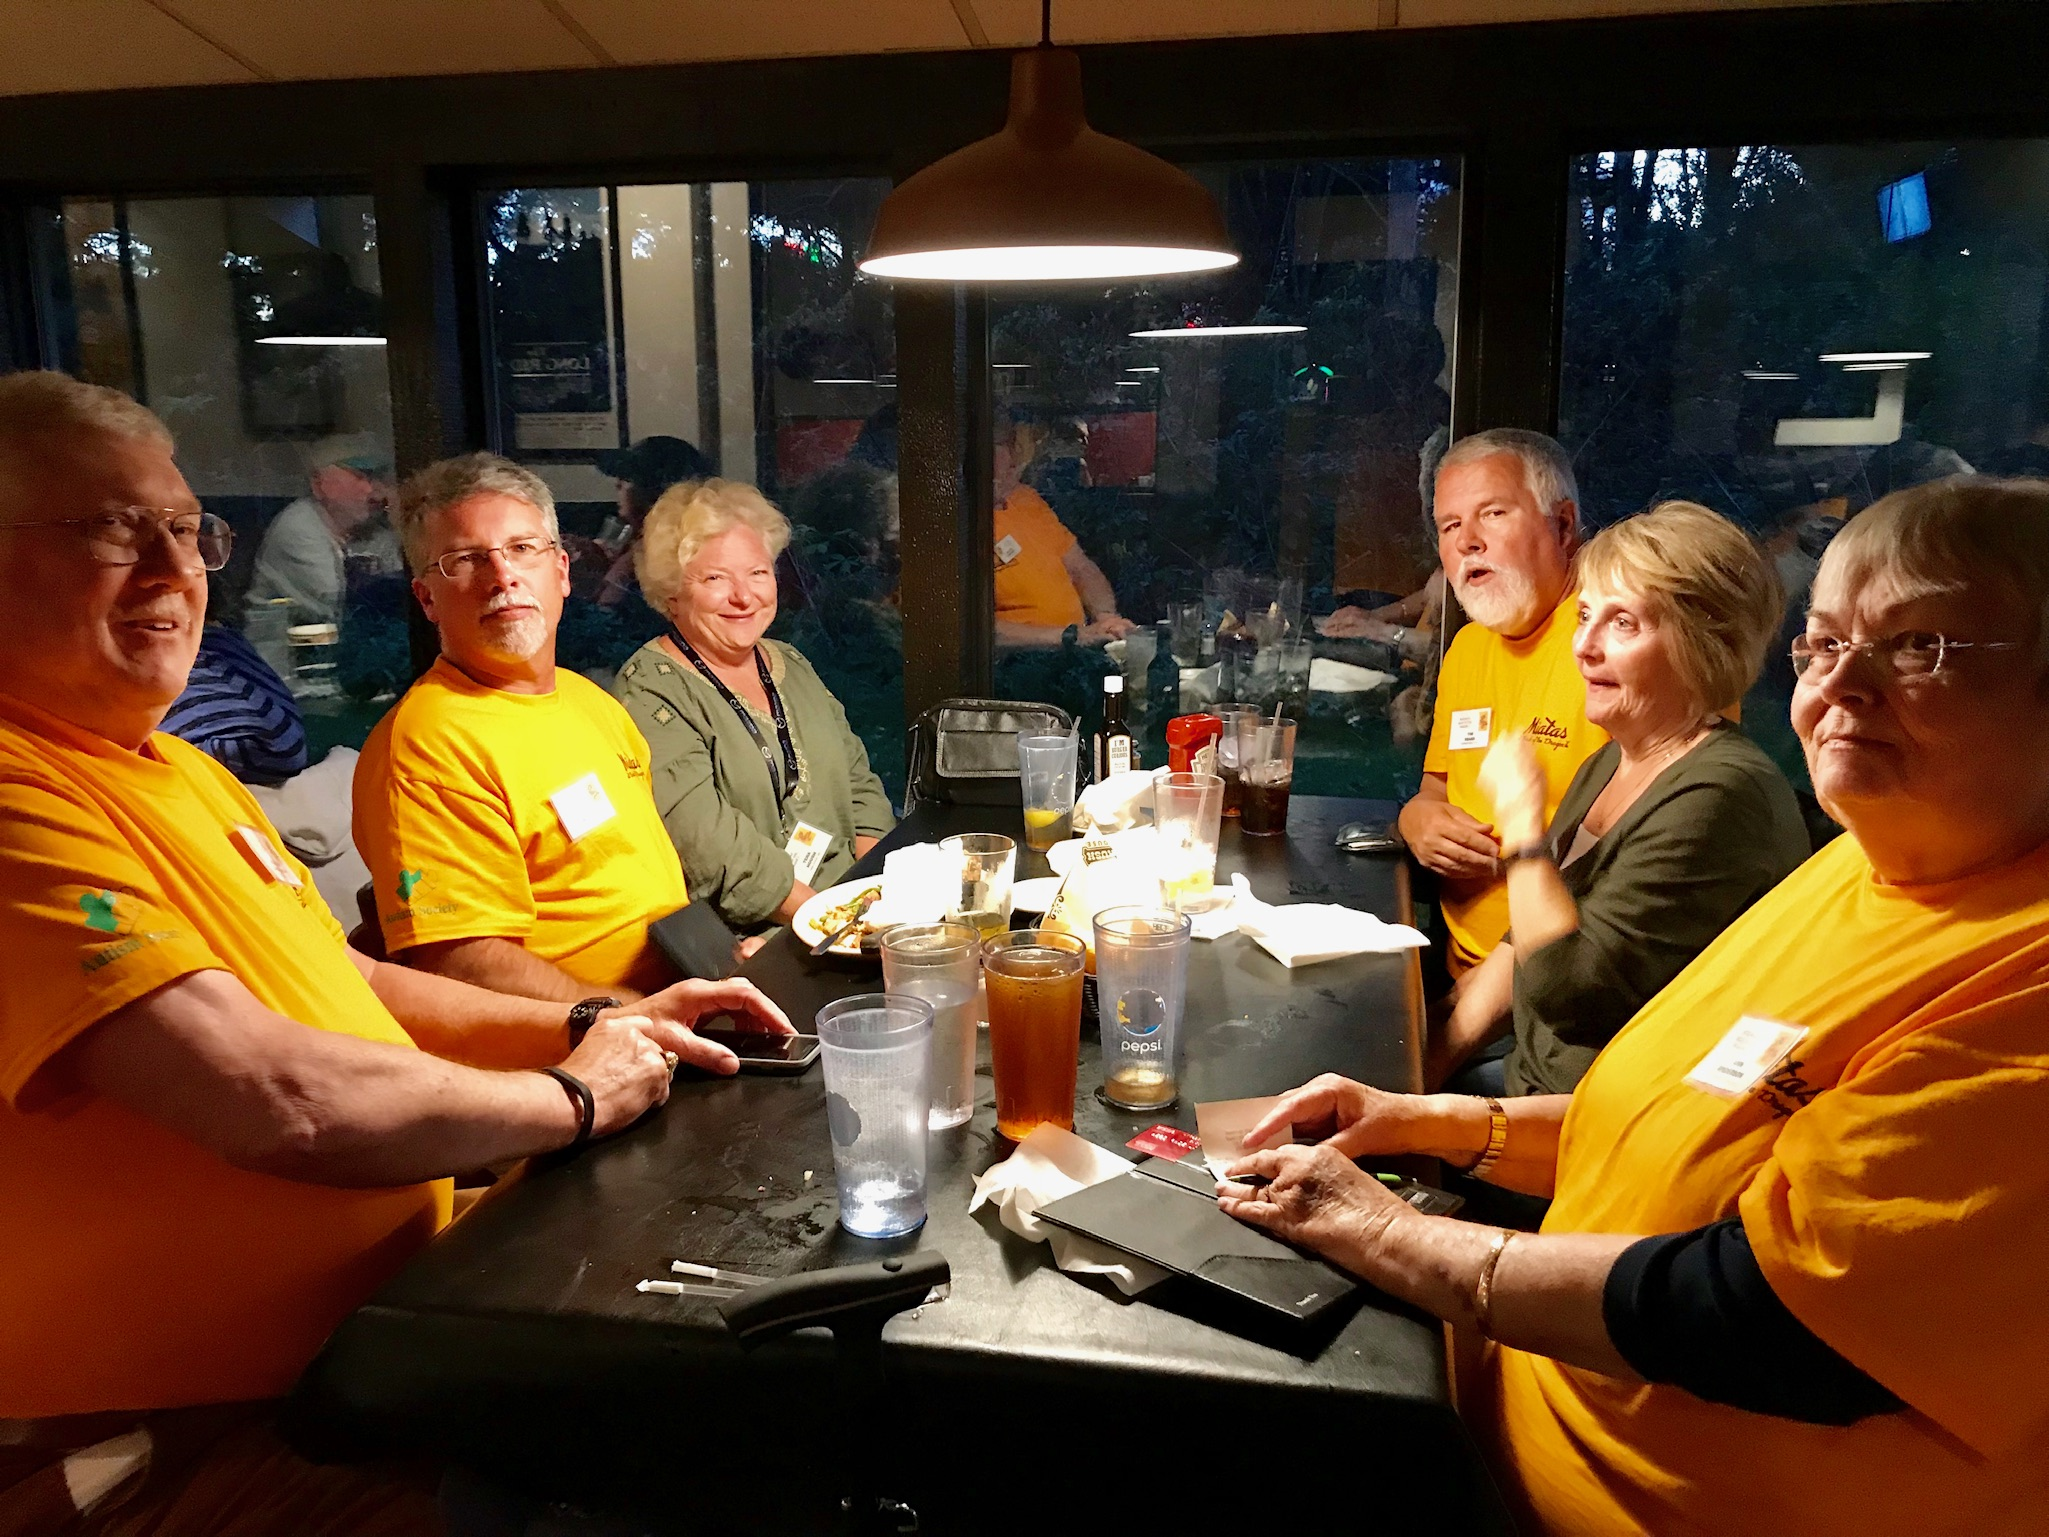 Saturday dinner at Sagebrush. Clockwise from left: Richard Anderson, Lee & Tena Hough, Tim & Cindy Beard, and Ann Anderson.